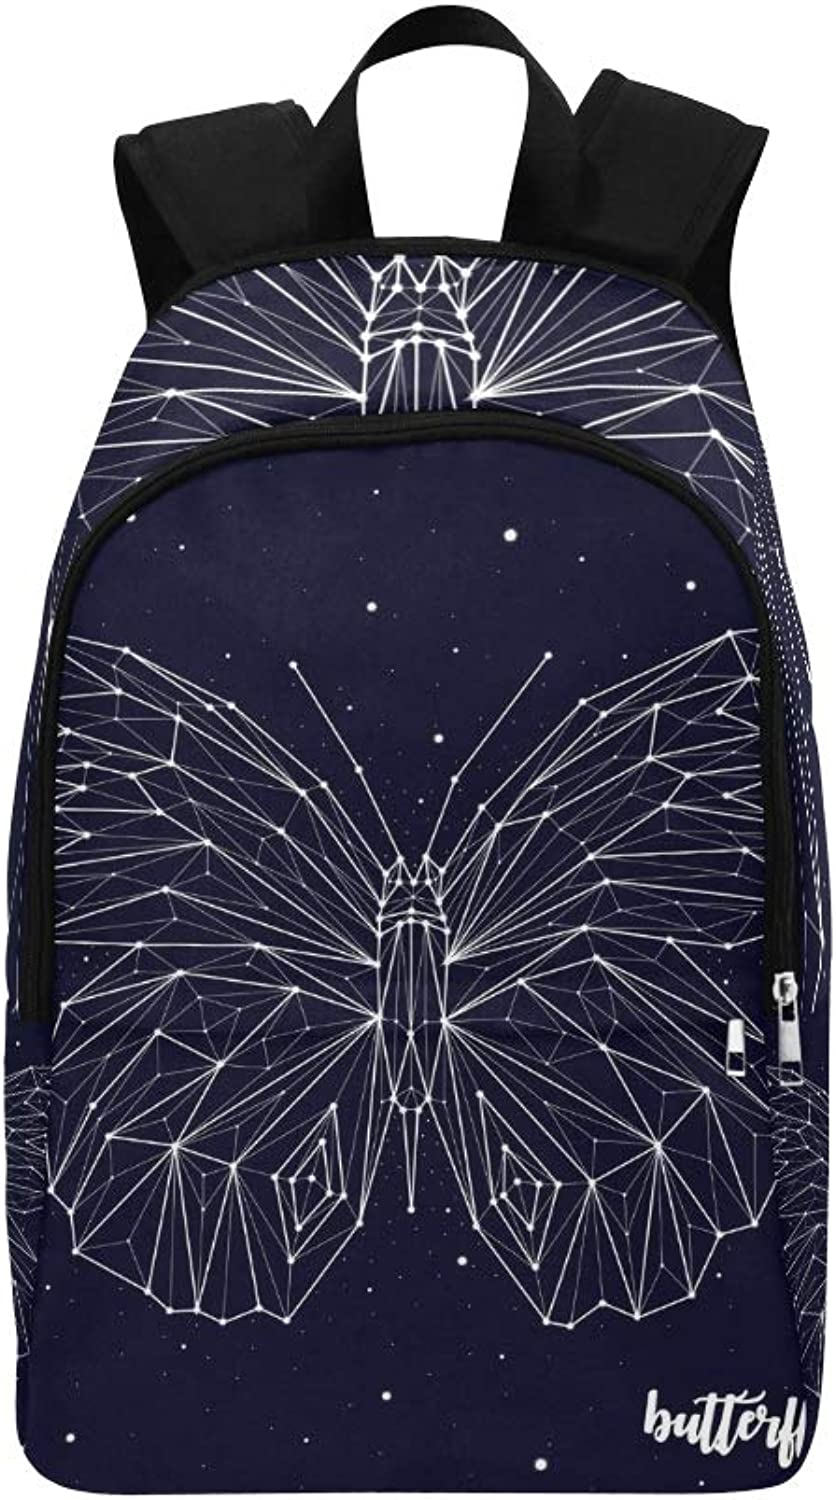 Butterfly Constellation Casual Daypack Travel Bag College School Backpack for Mens and Women